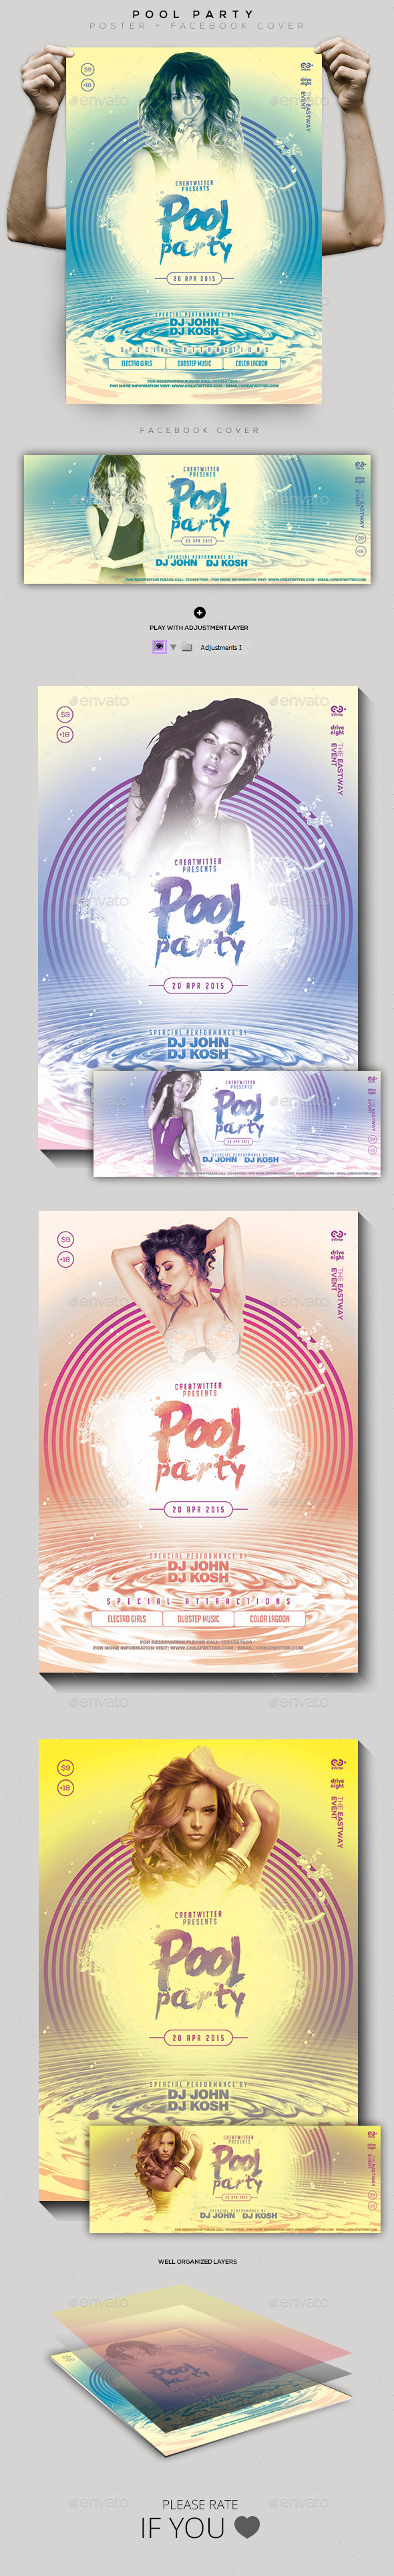 Pool Party Flyer / Poster / Facebook Cover - Clubs & Parties Events